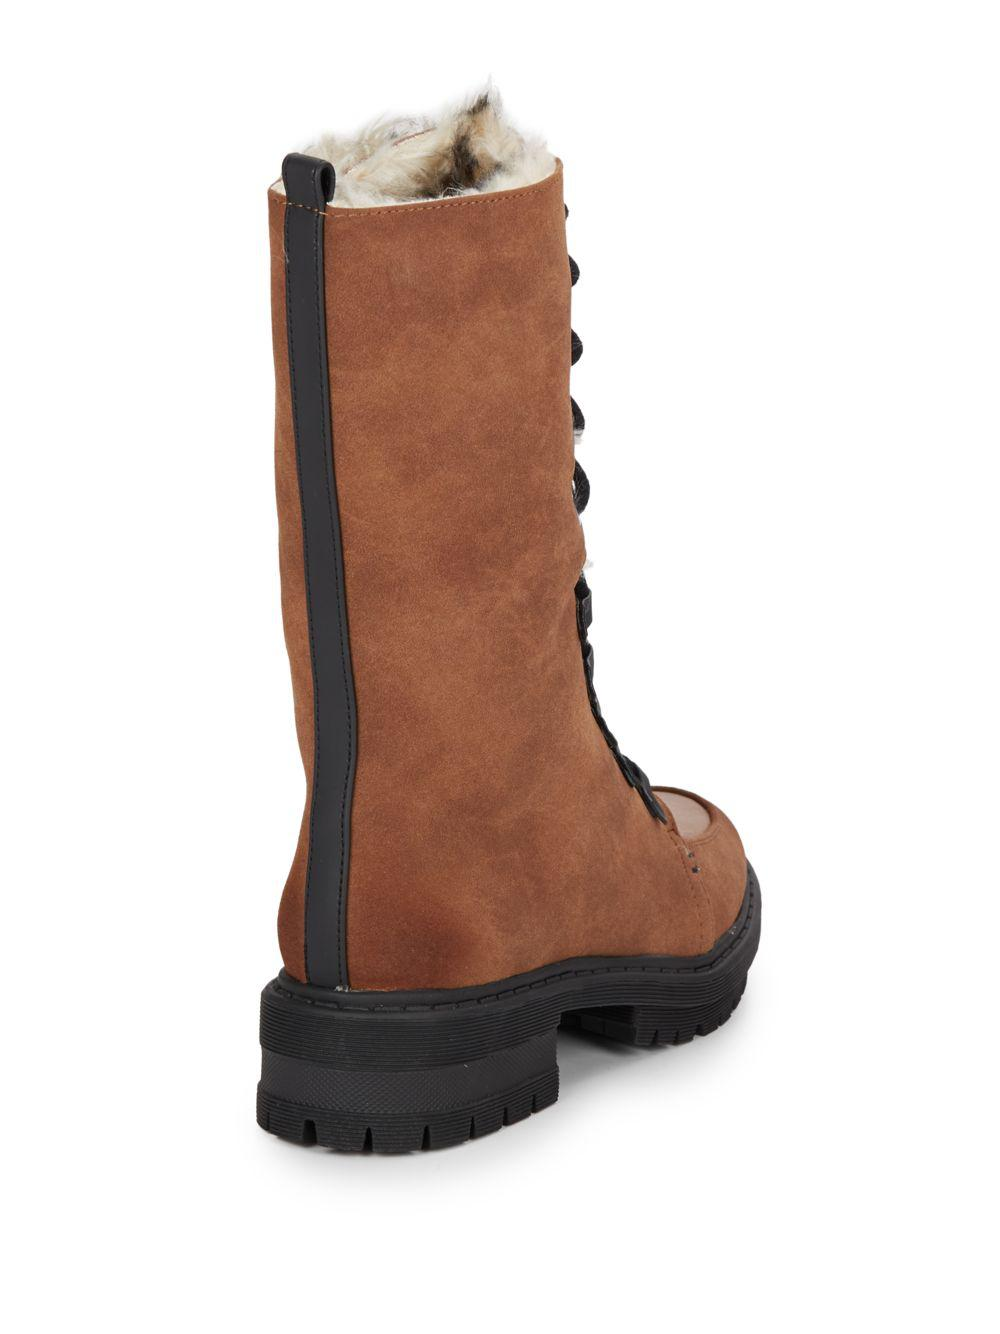 94f6ba2e0588 Lyst - Circus by Sam Edelman Liam Faux Fur-trimmed Boots in Brown